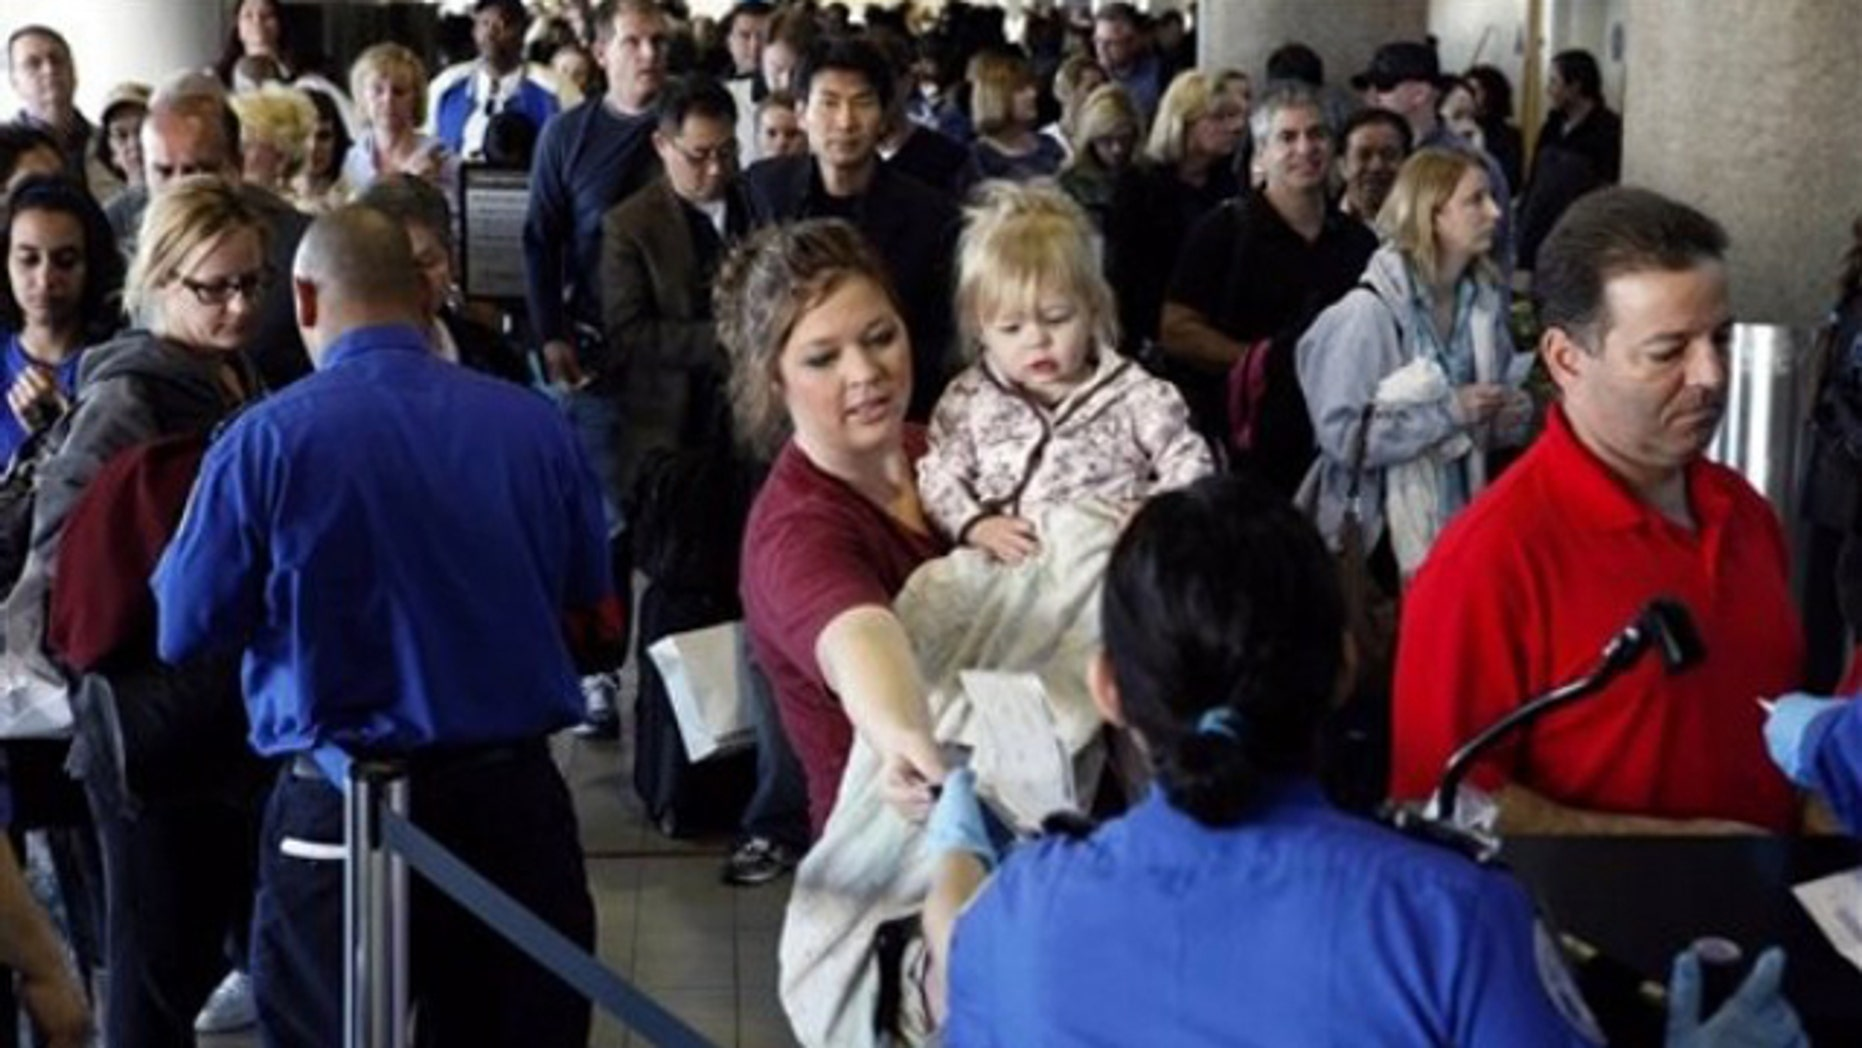 April 8: Airline passengers line-up inside terminals at Los Angeles International Airport after several terminals were closed due to a security breach.